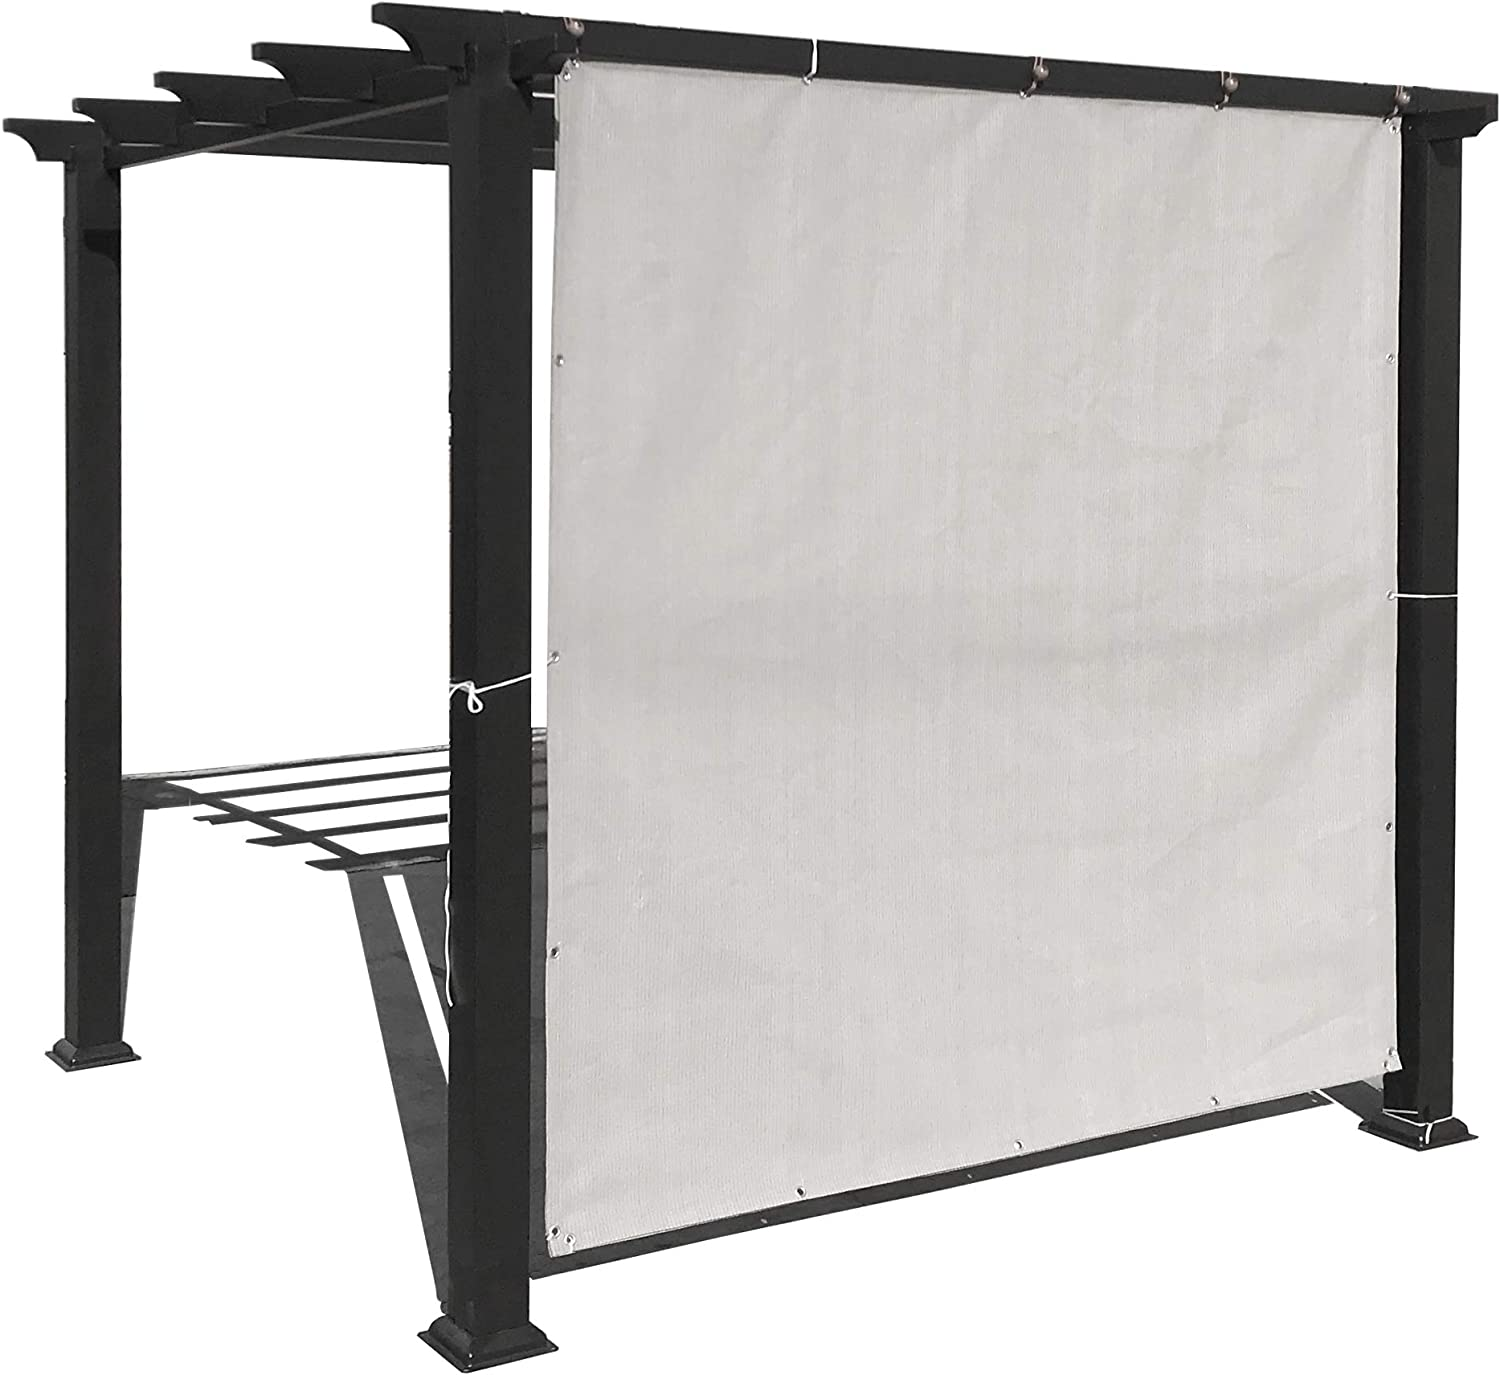 Alion Home Privacy Panel with Grommets and Hems on 4 Sides for Patio, Awning, Window, Pergola or Gazebo. Smoke Grey (6' x 4')